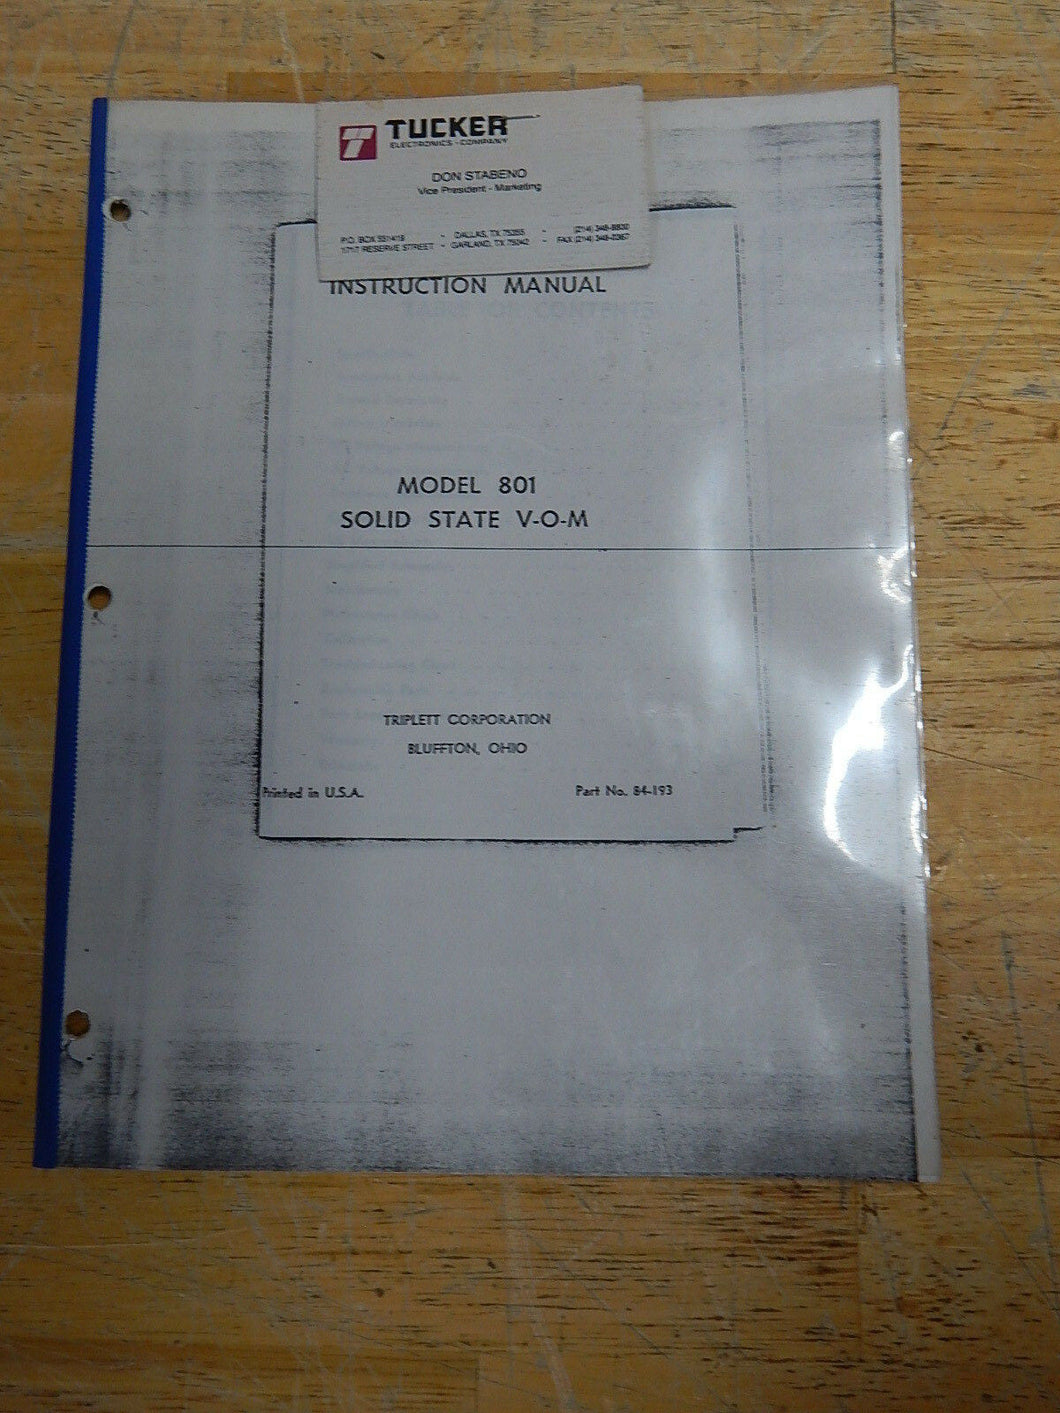 Triplett Model 801 Solid State V-O-M Instruction Manual